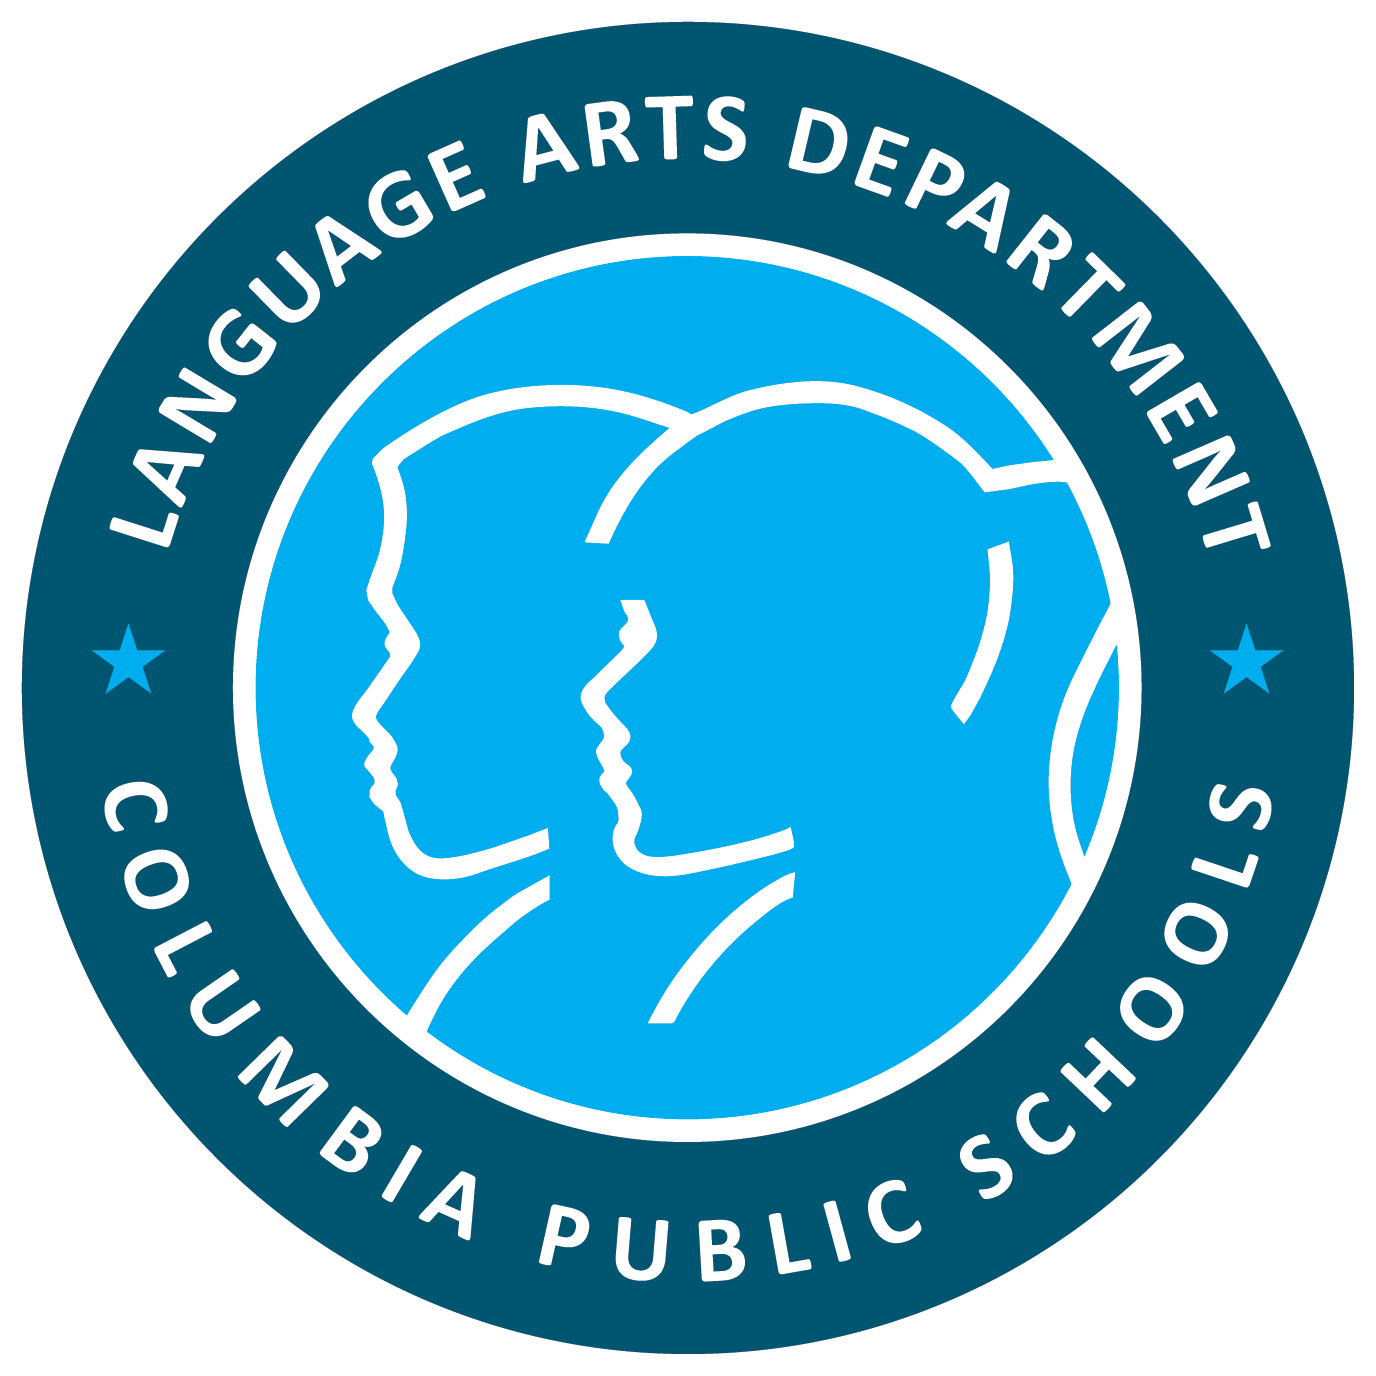 LanguageArtsDepartmentLogo